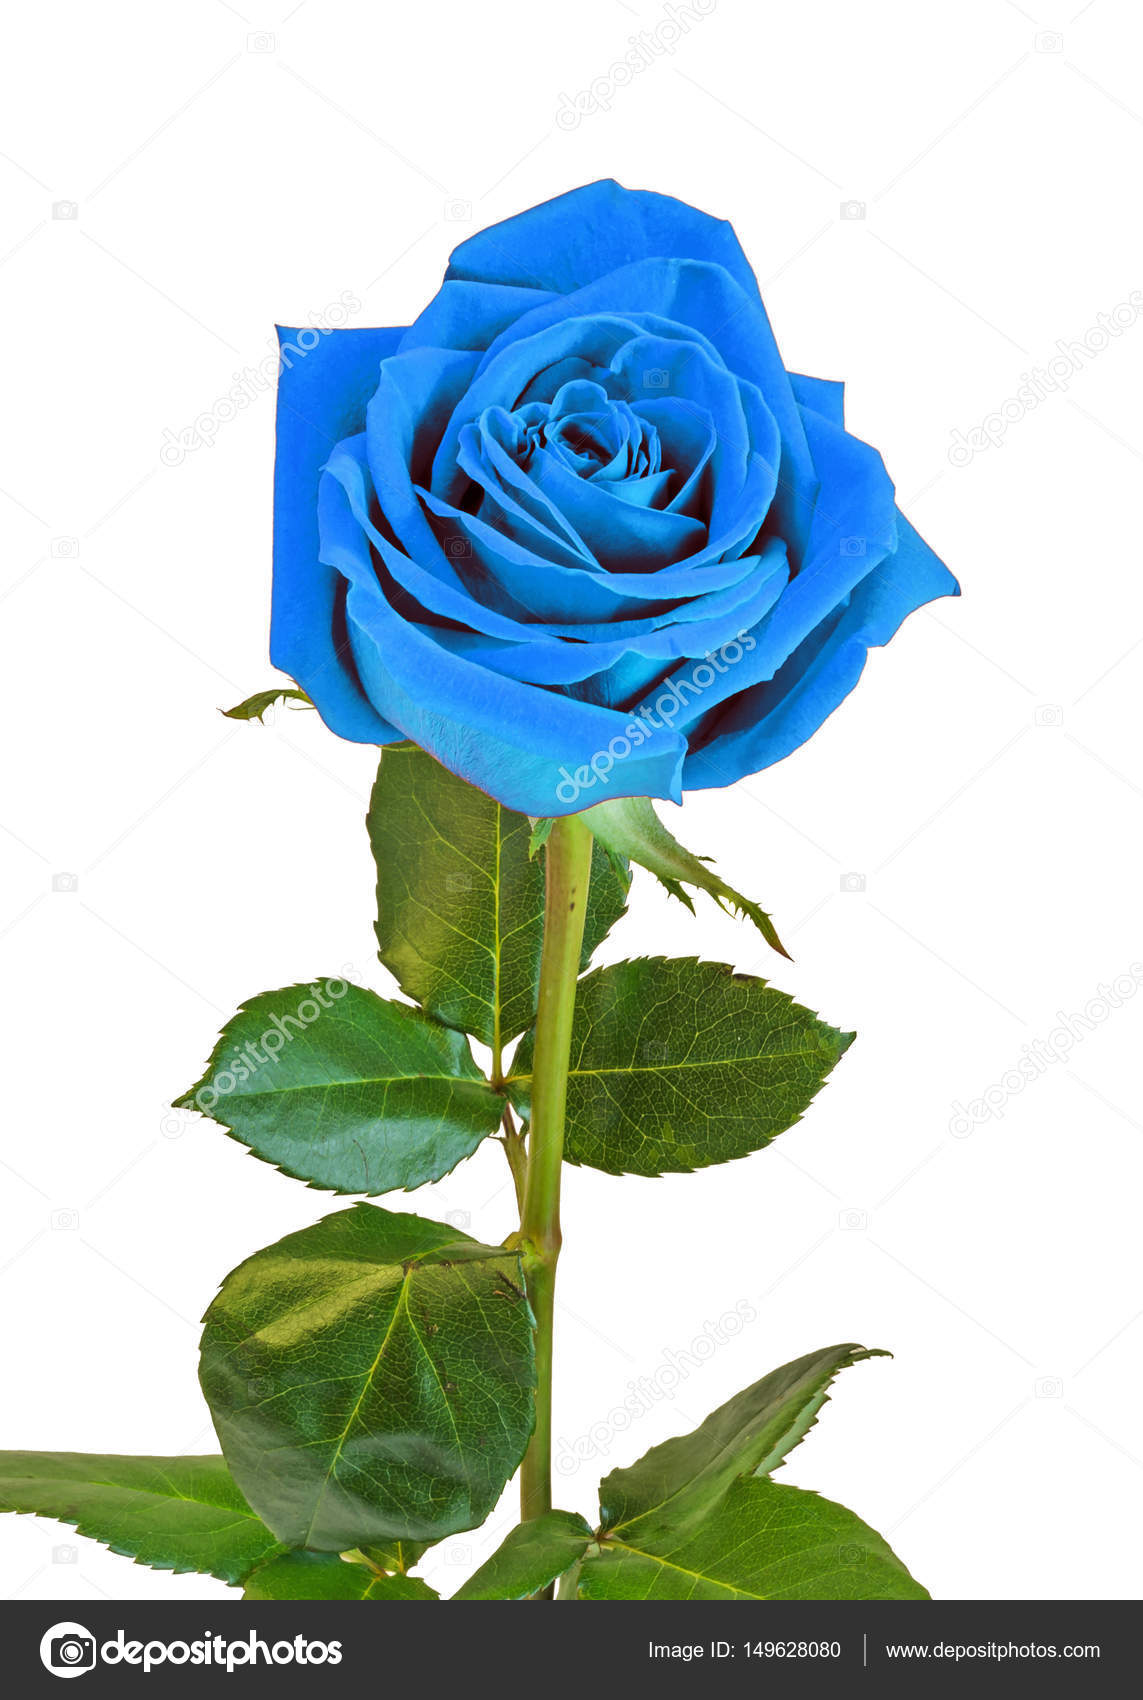 Blue Rose Flower Green Leaves Close Up Isolated On White Back